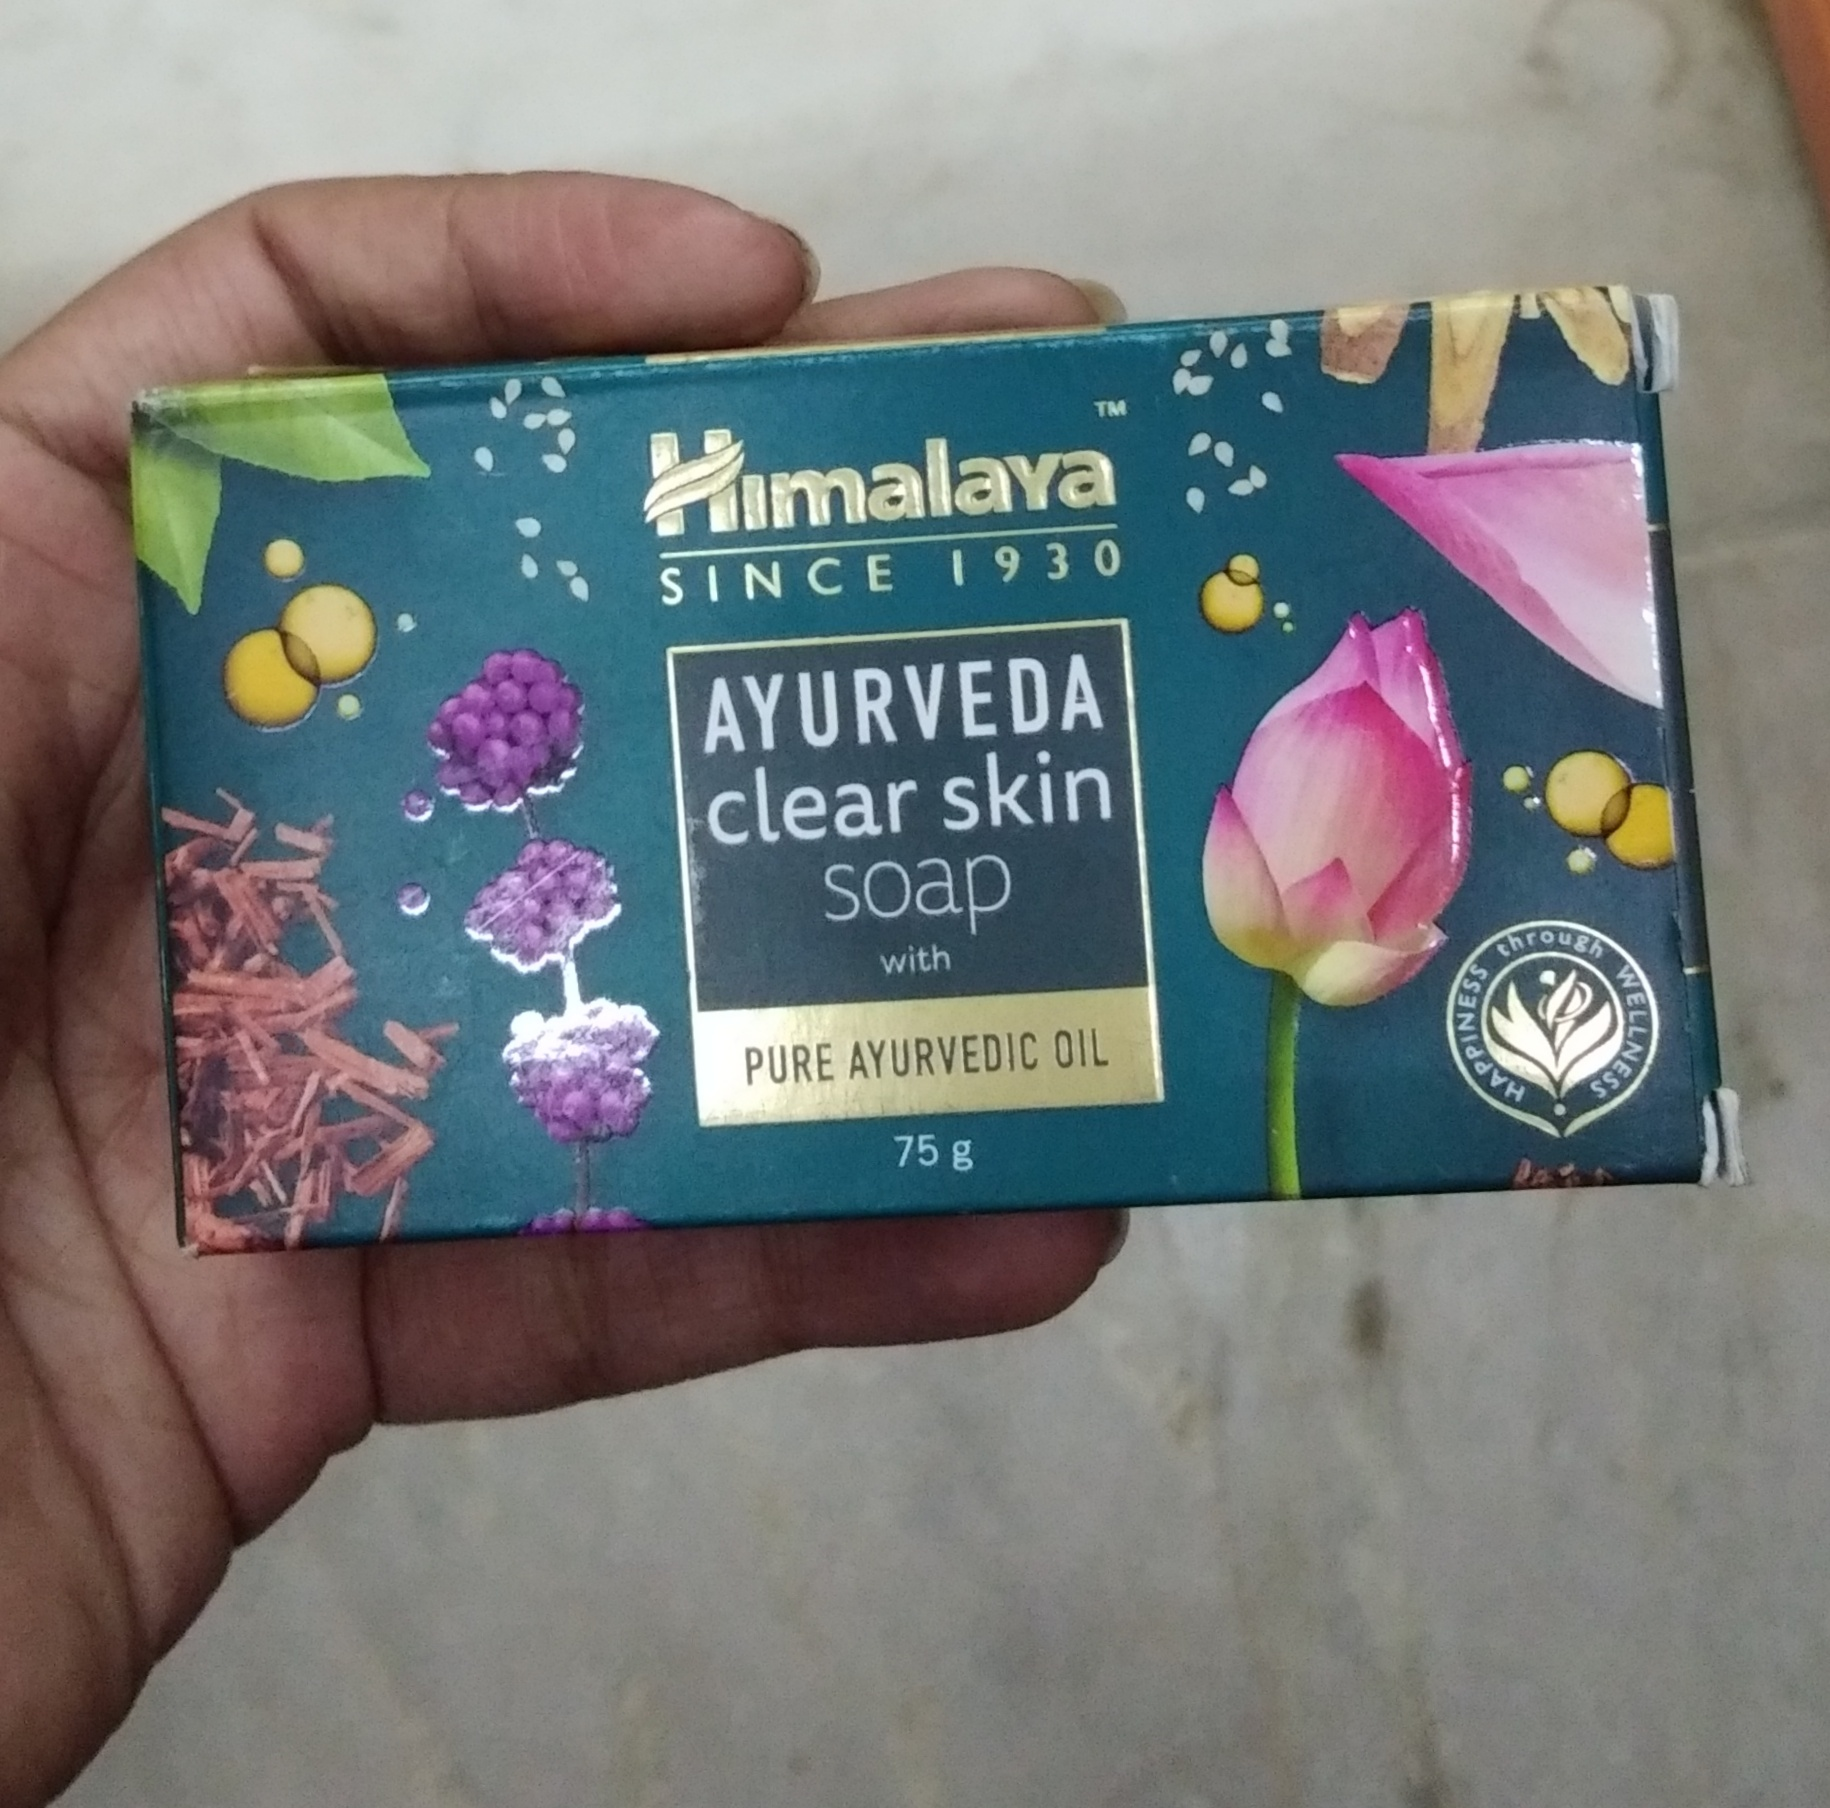 Himalaya Ayurveda Clear Skin Soap pic 2-Good one-By Nasreen